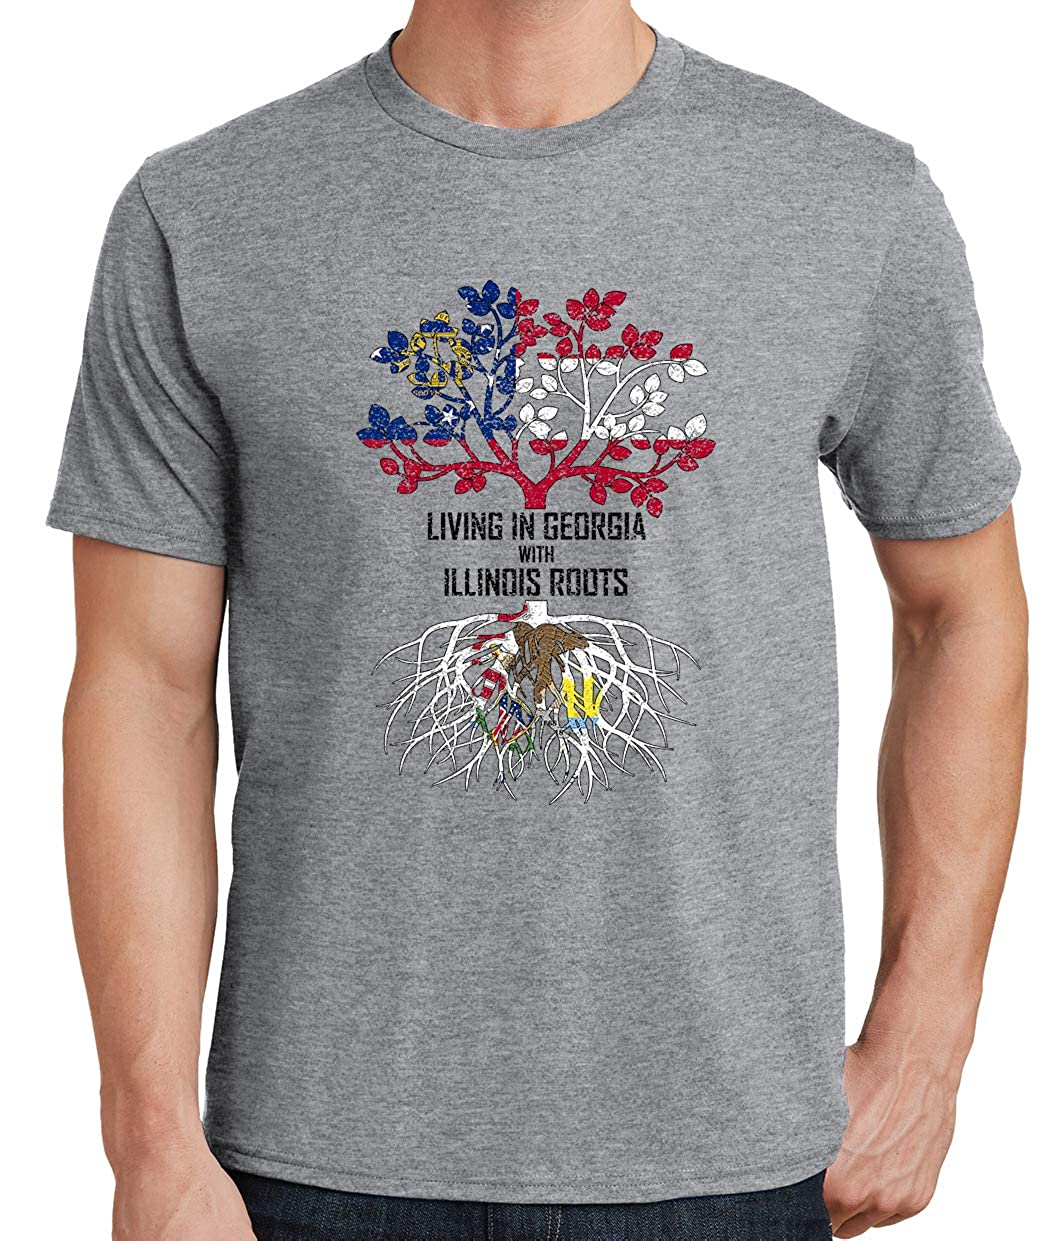 Tenacitee Mens Living in Georgia Illinois Roots T-Shirt